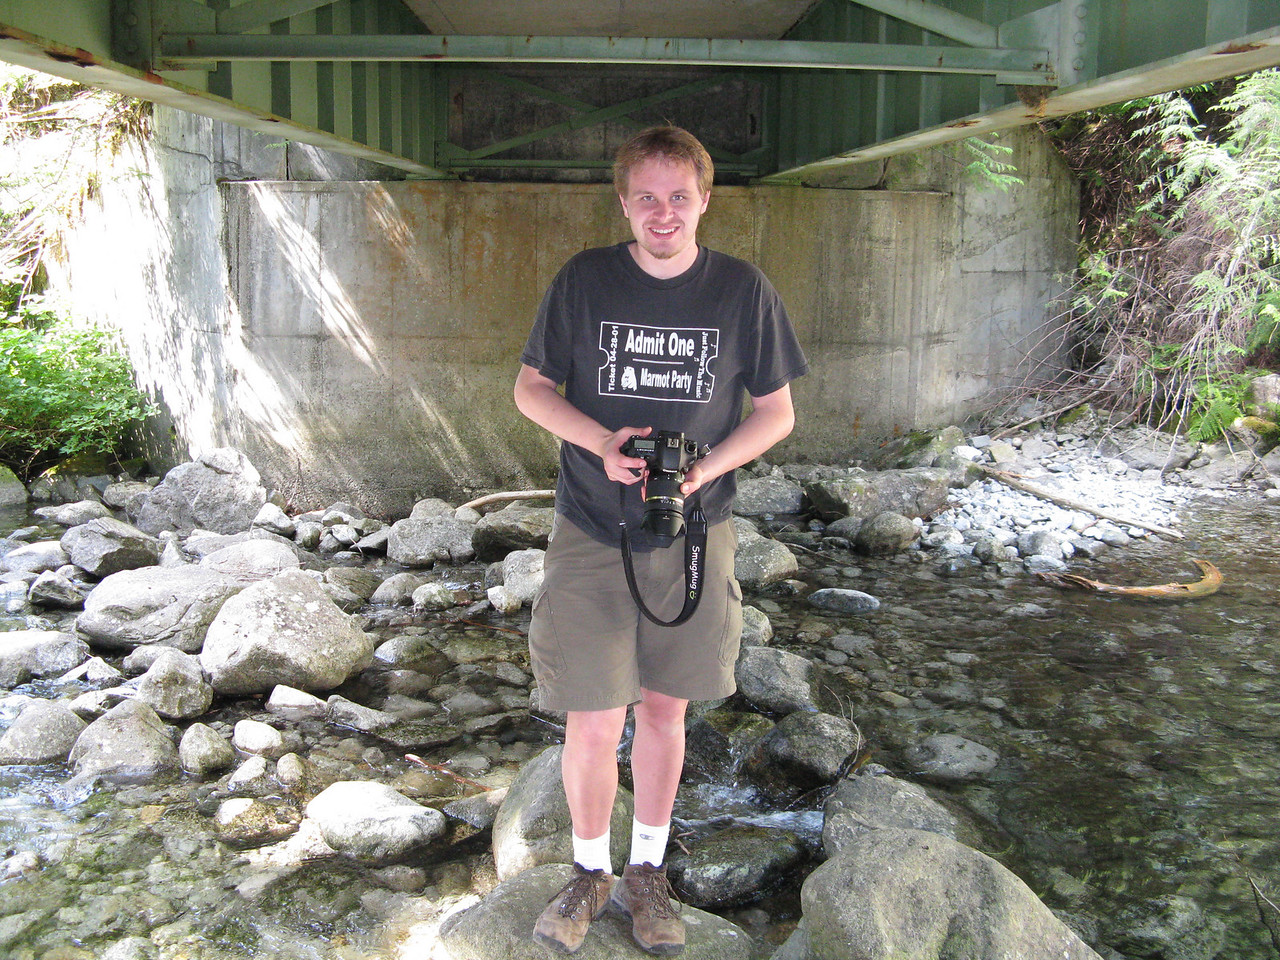 We climbed under the bridge in order to get to the falls.  A portrait of the photographer as a young man,.